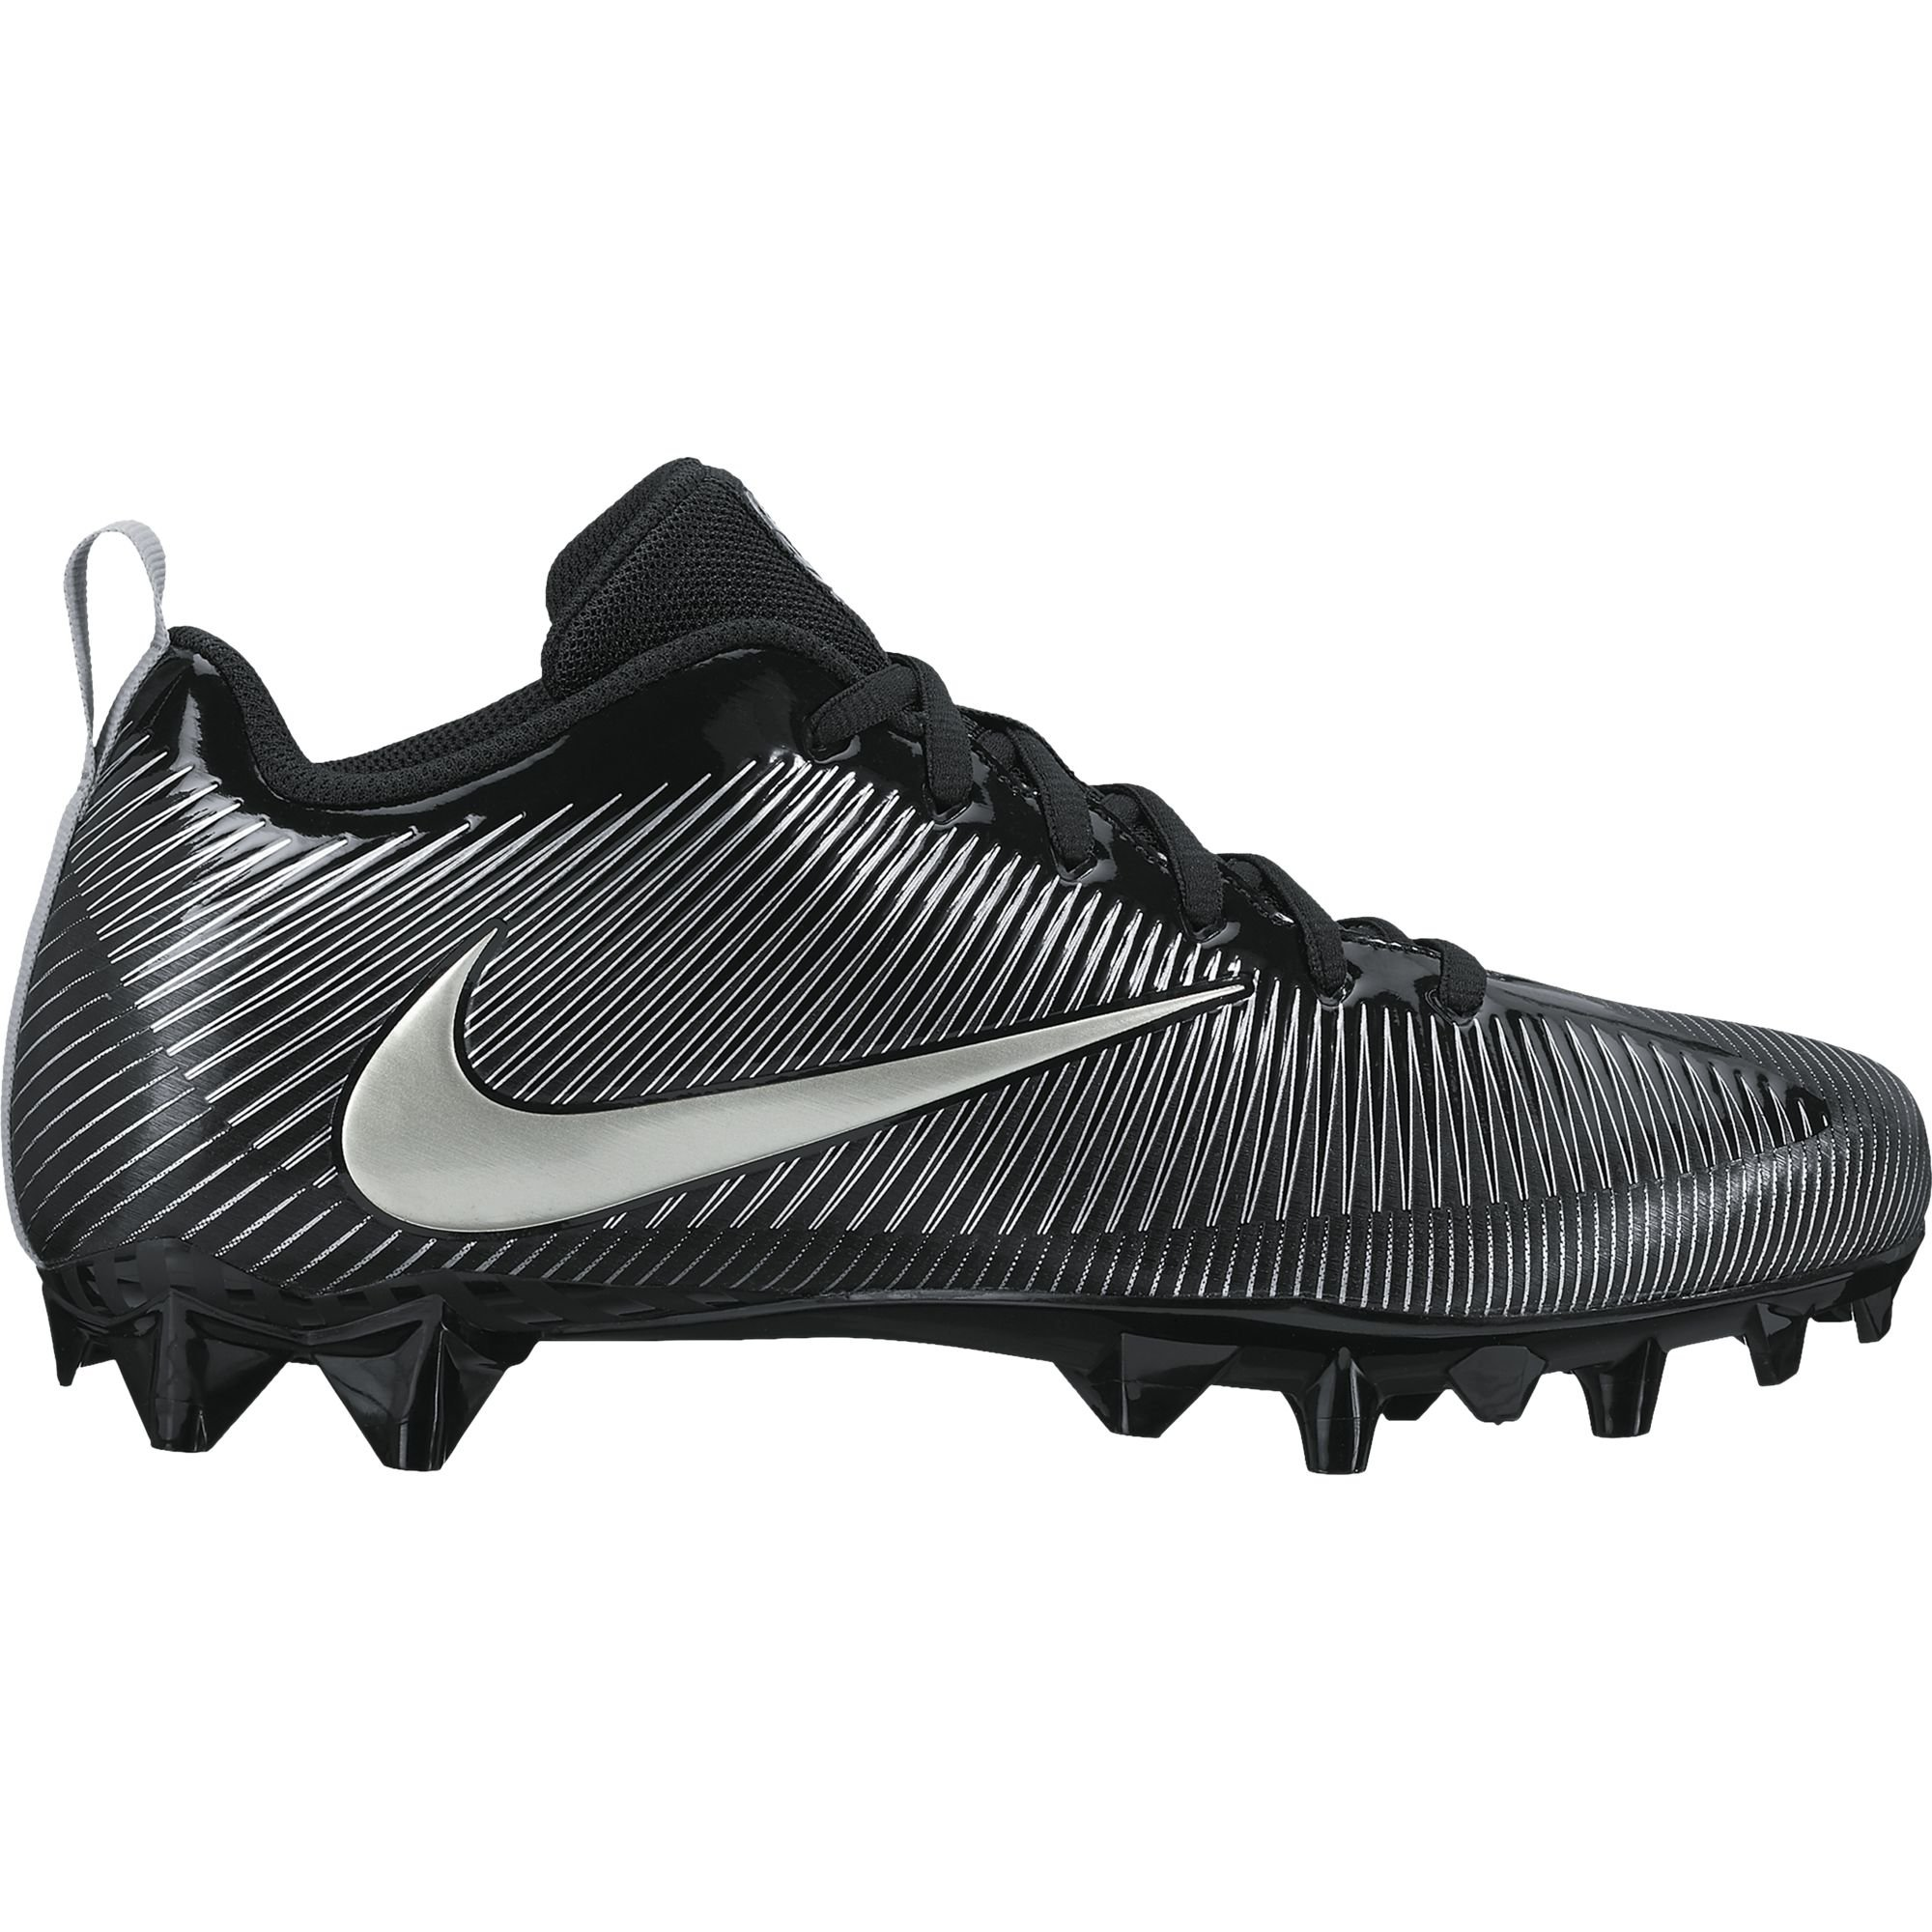 NIKE Men's Vapor Strike 5 TD Football Cleat Black/Metallic Silver Size 8 M US